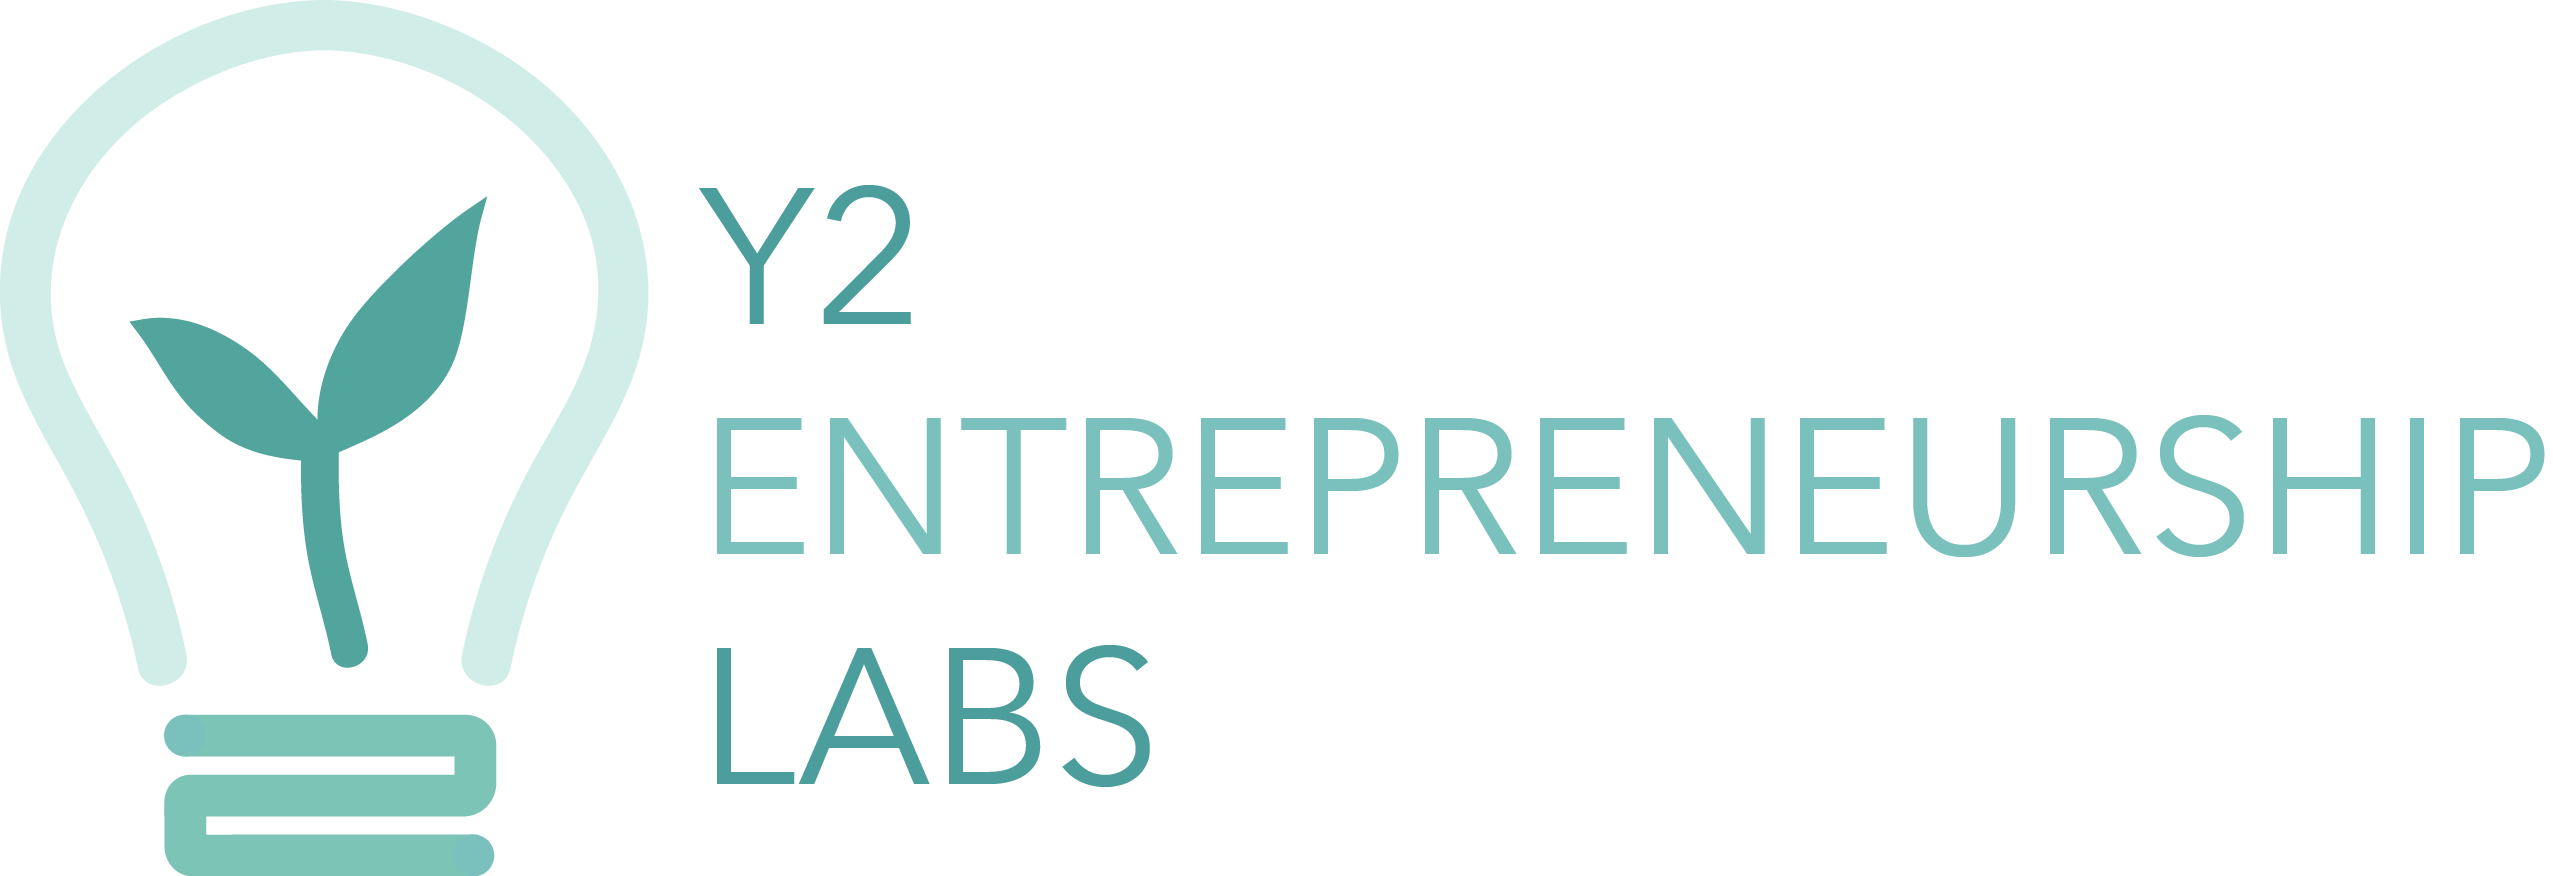 y2entrepreneurshiplabs28129.png